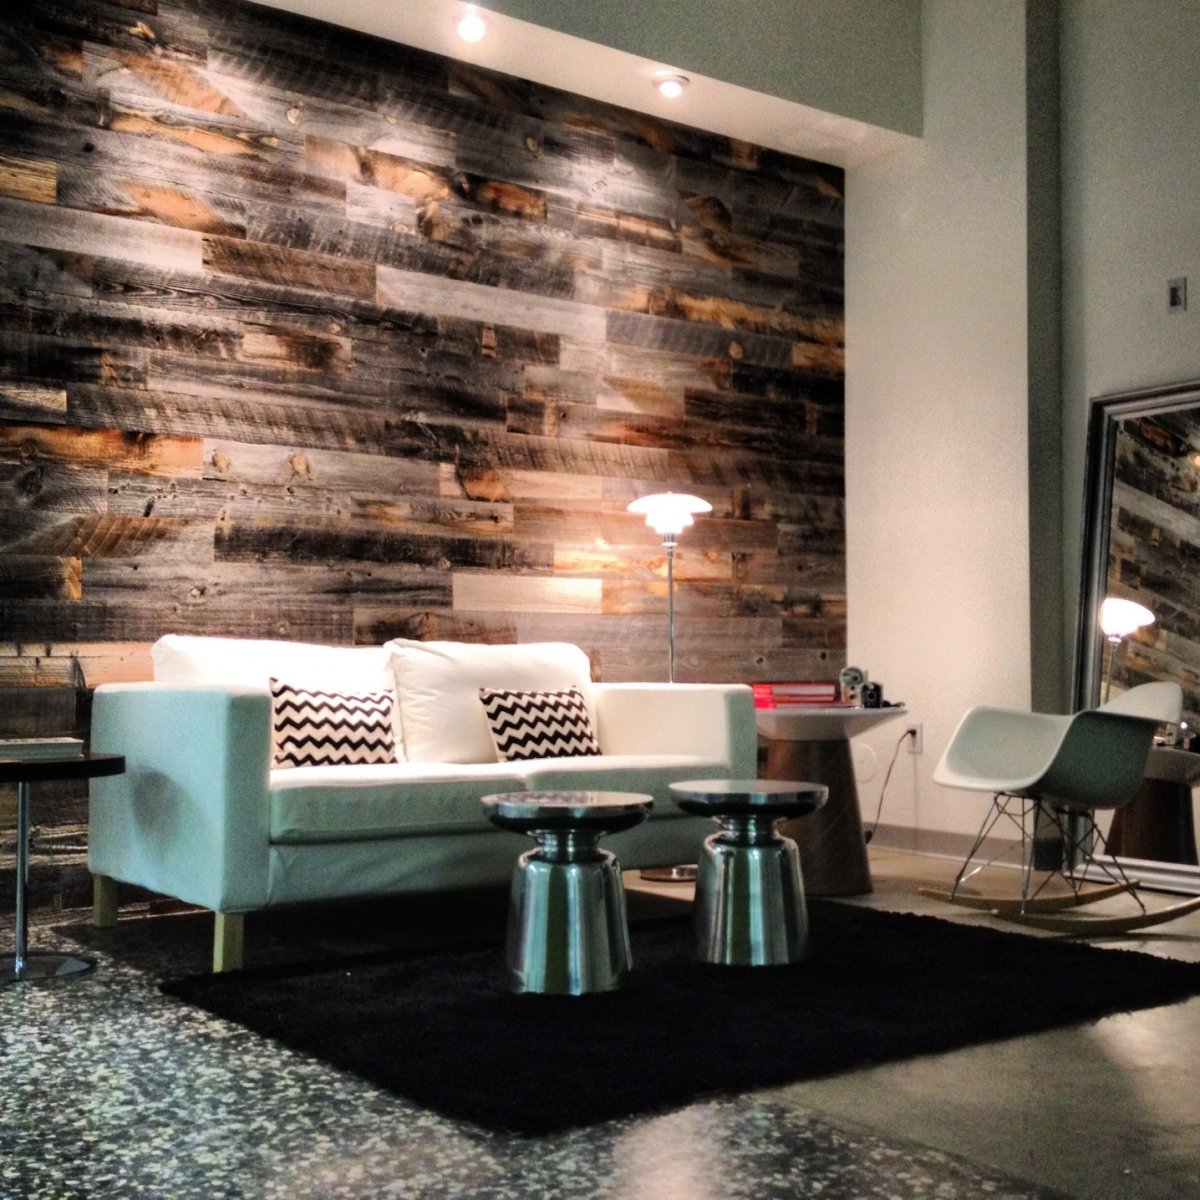 Stikwood adds a warm touch to the walls of the Franklin Pictures production company's office in midtown. (Courtesy of Franklin Pictures)